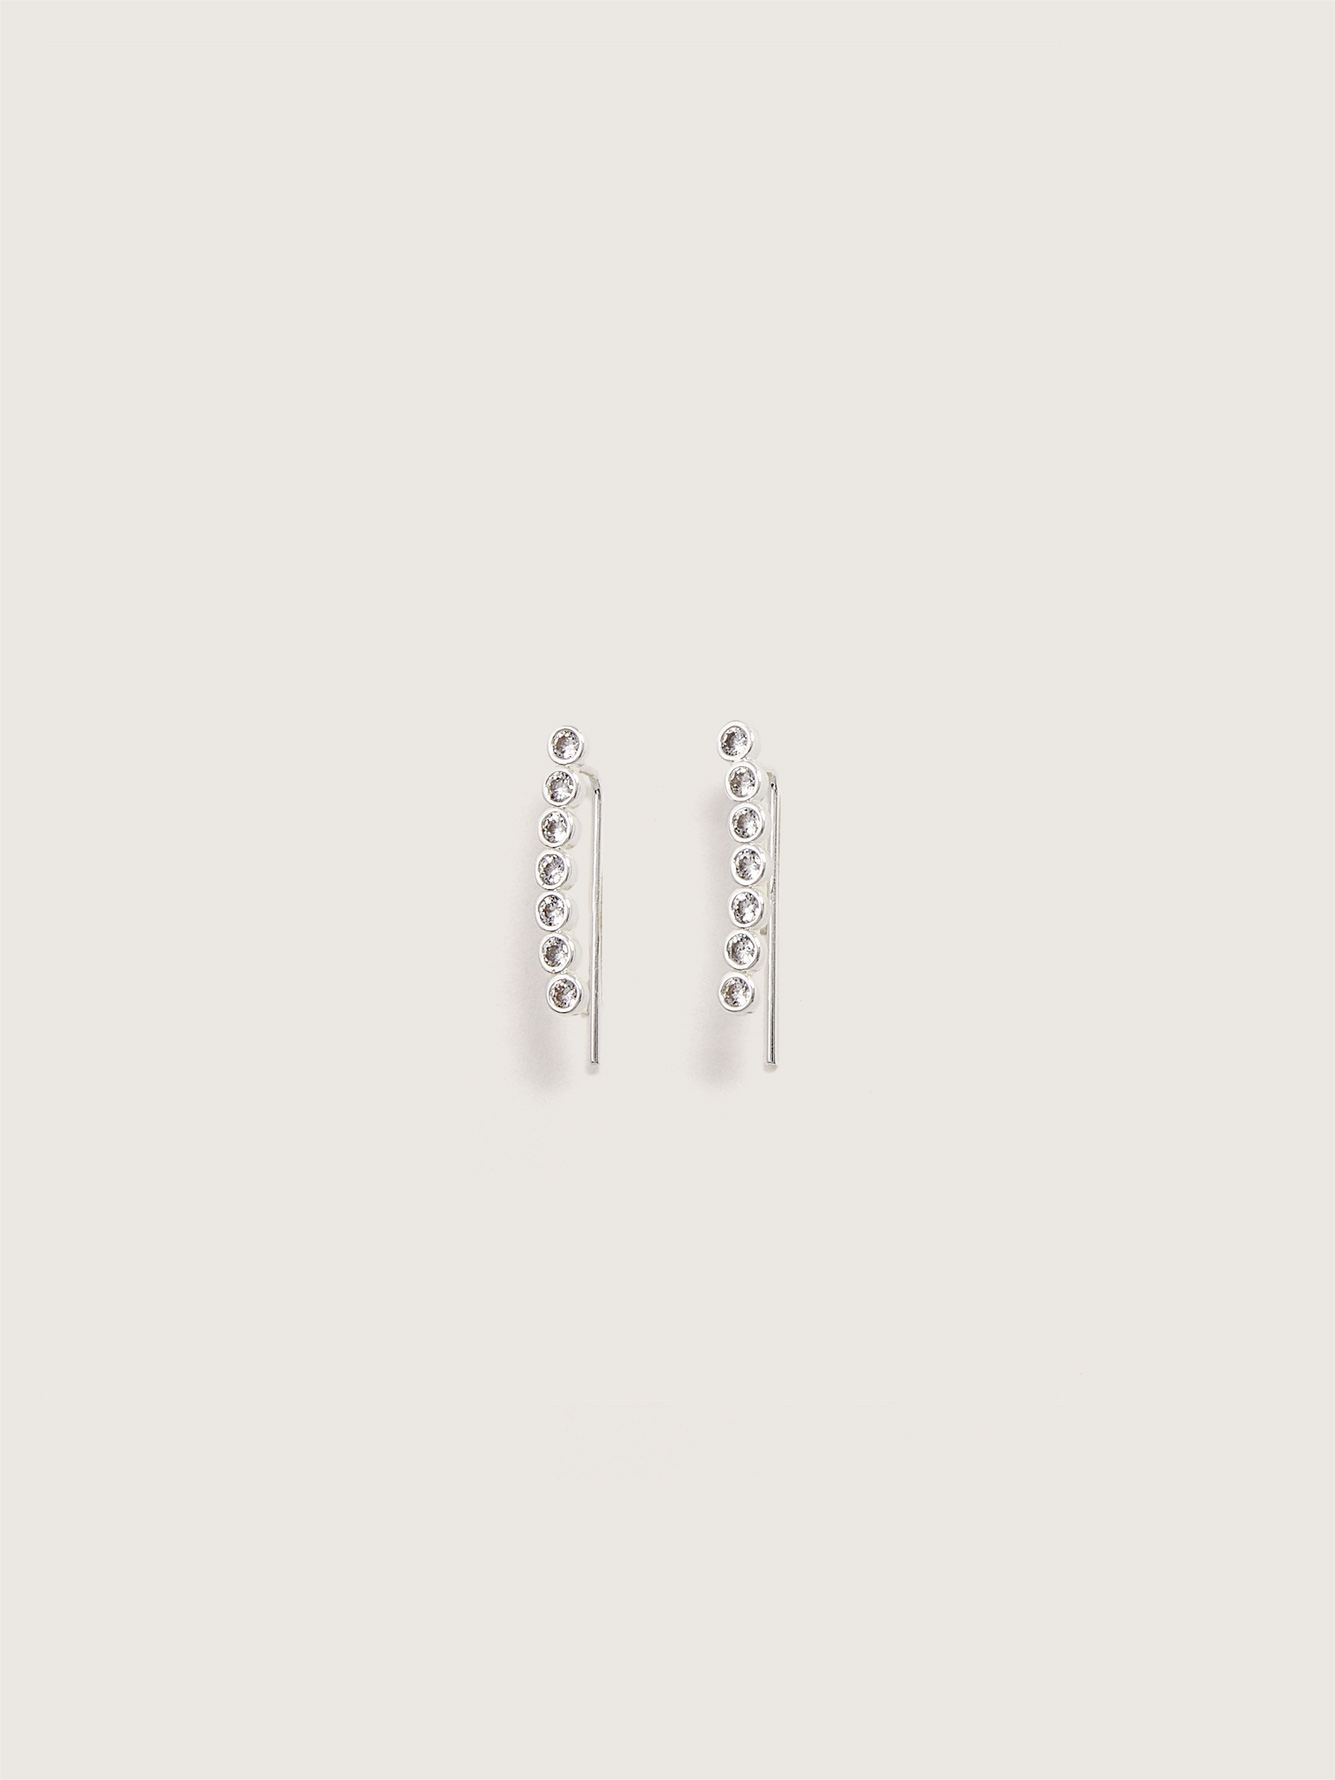 Cuff Earrings with Hematite Stone - Addition Elle